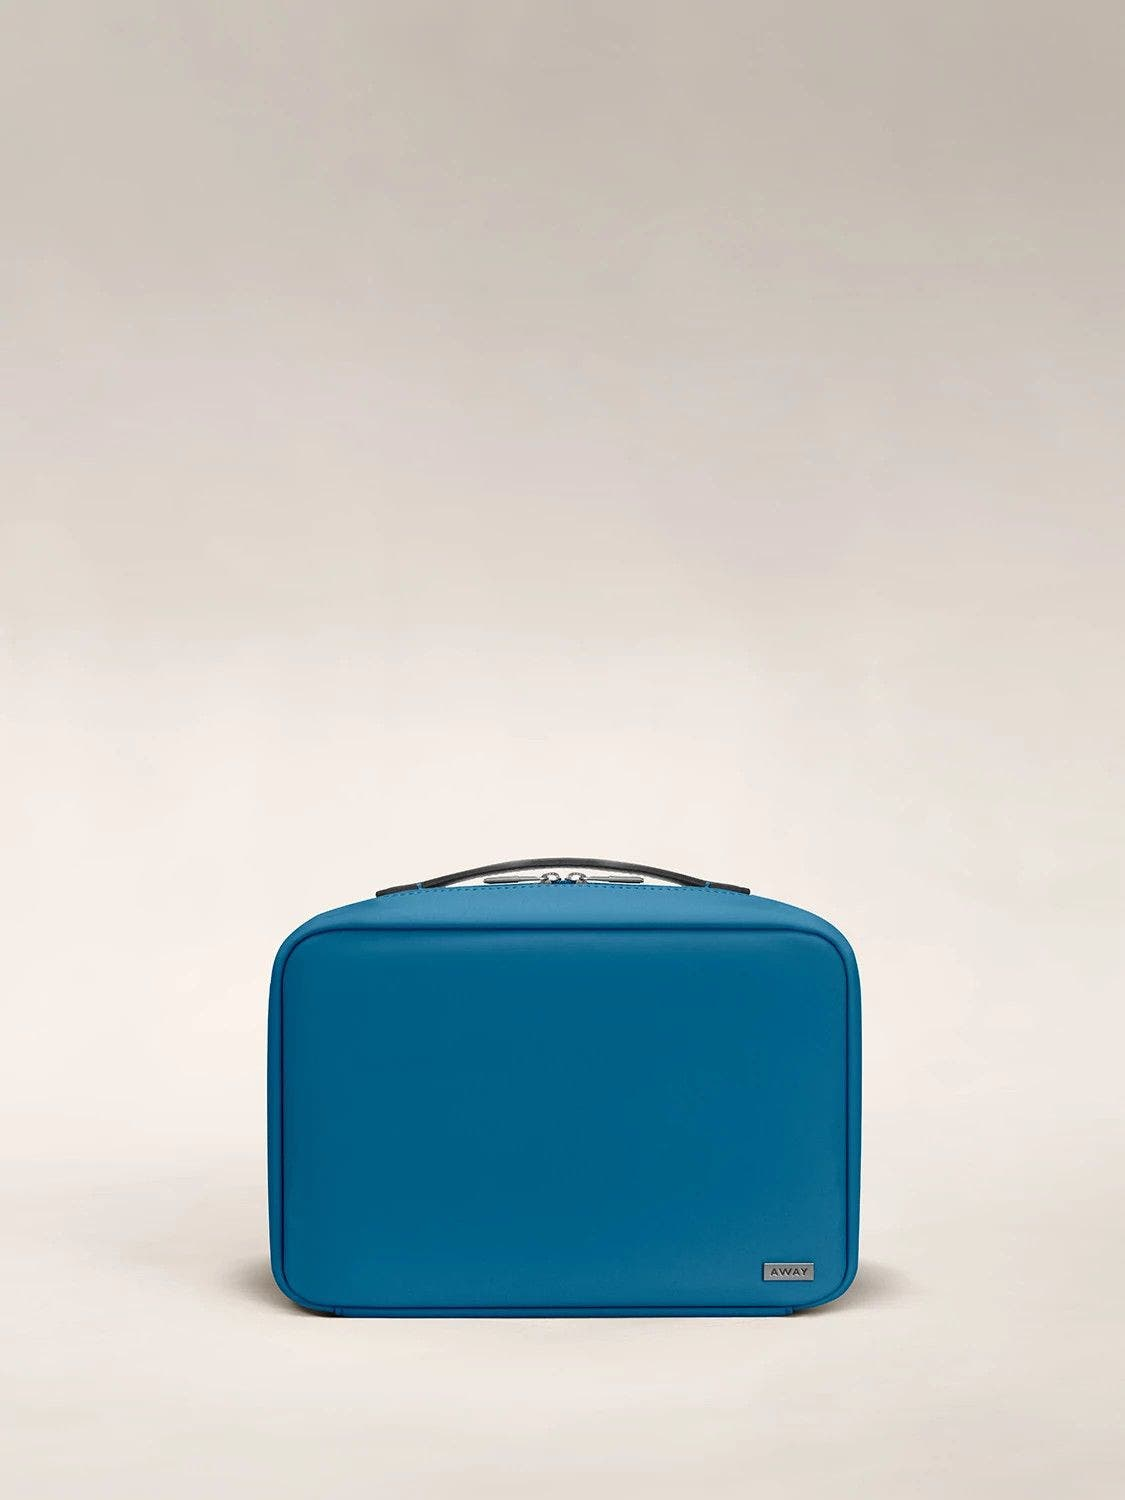 Front view of a deep teal toiletry bag with handle on top.